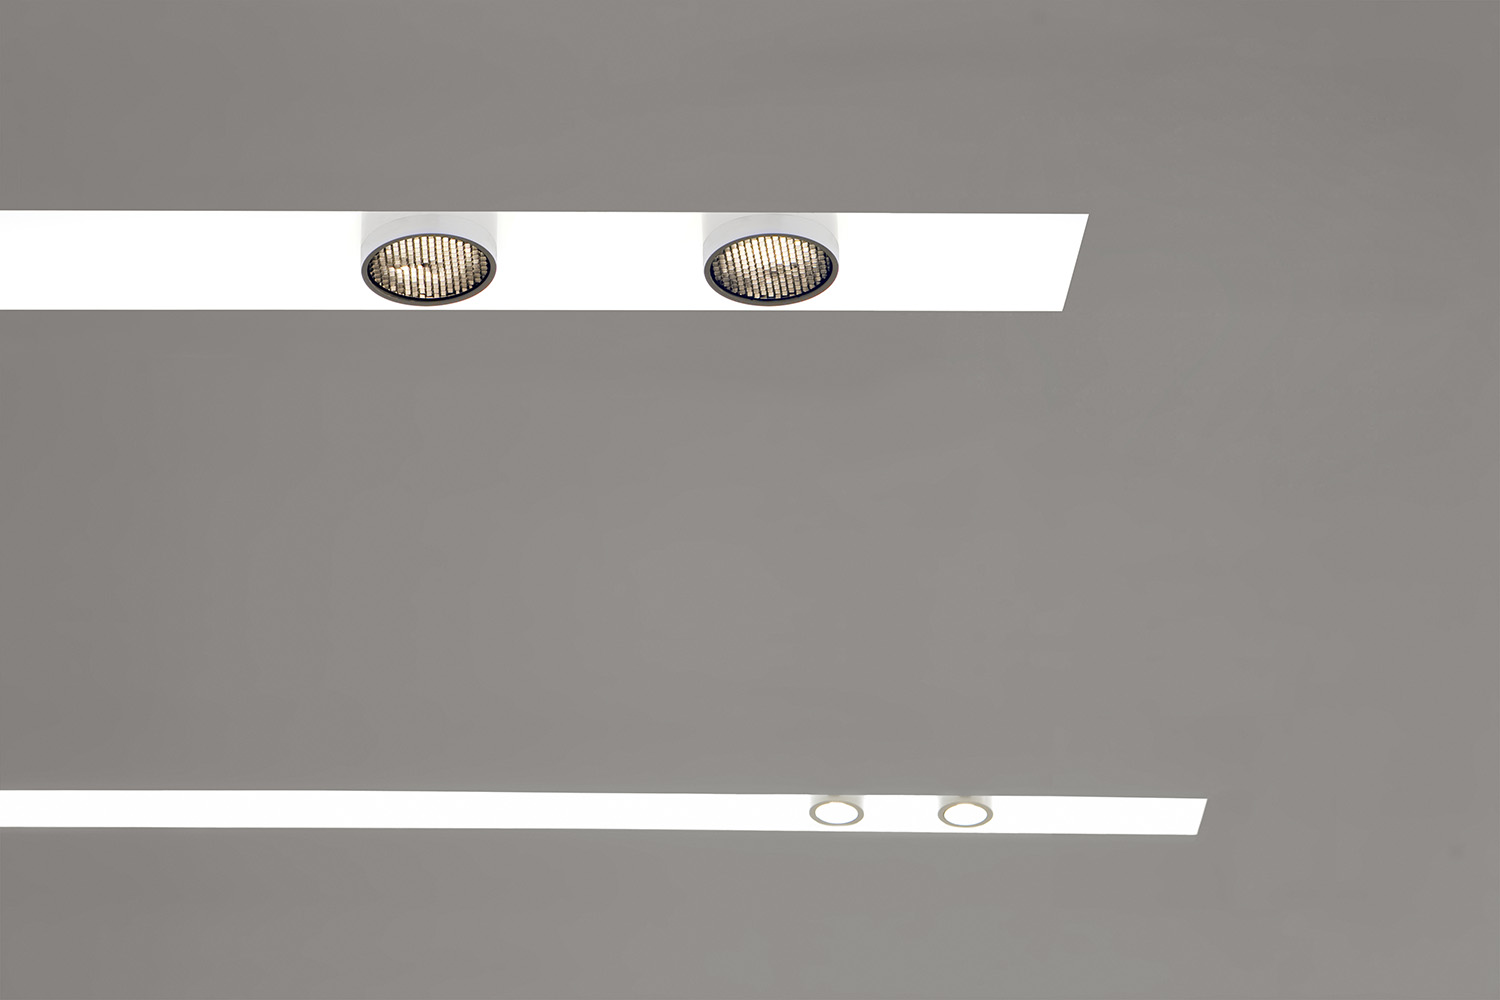 Light Cut Cove Lighting Fixture 2